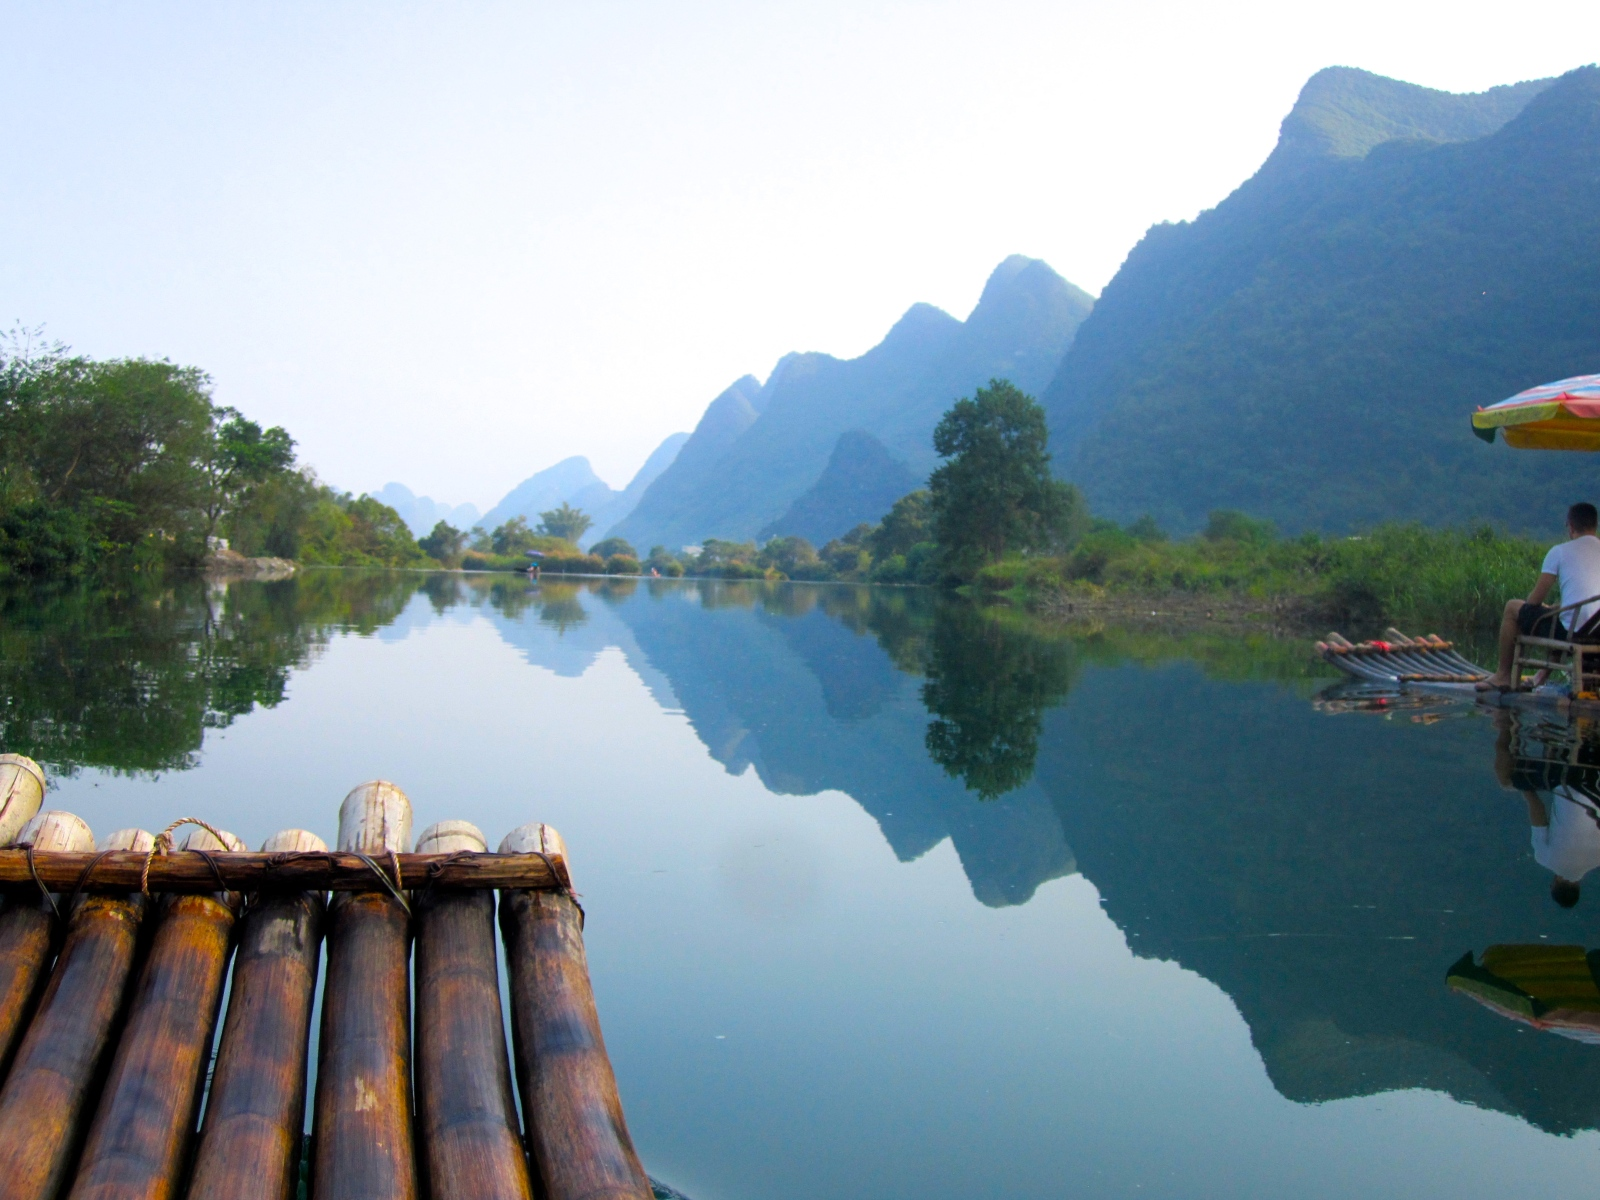 Rafting down the Yulong River among the limestone hills in Yangshuo, China